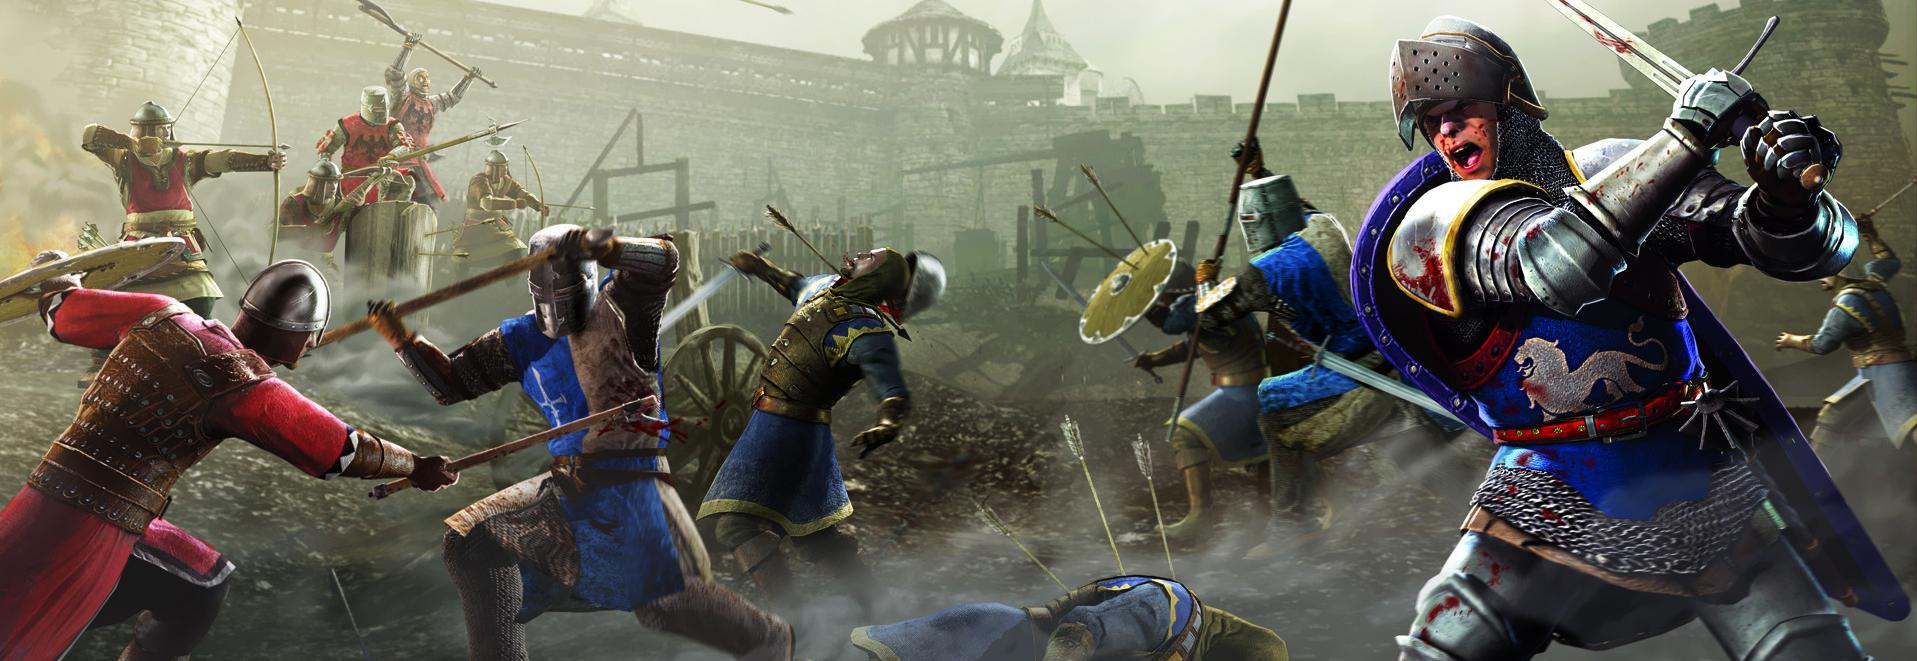 an analysis of the concept of chivalry in medieval europe Japan's medieval period was similar to europe's in many ways, with a powerful warrior class, codes of chivalry, and a rise in religion in this lesson, we'll explore japan's medieval era and see.